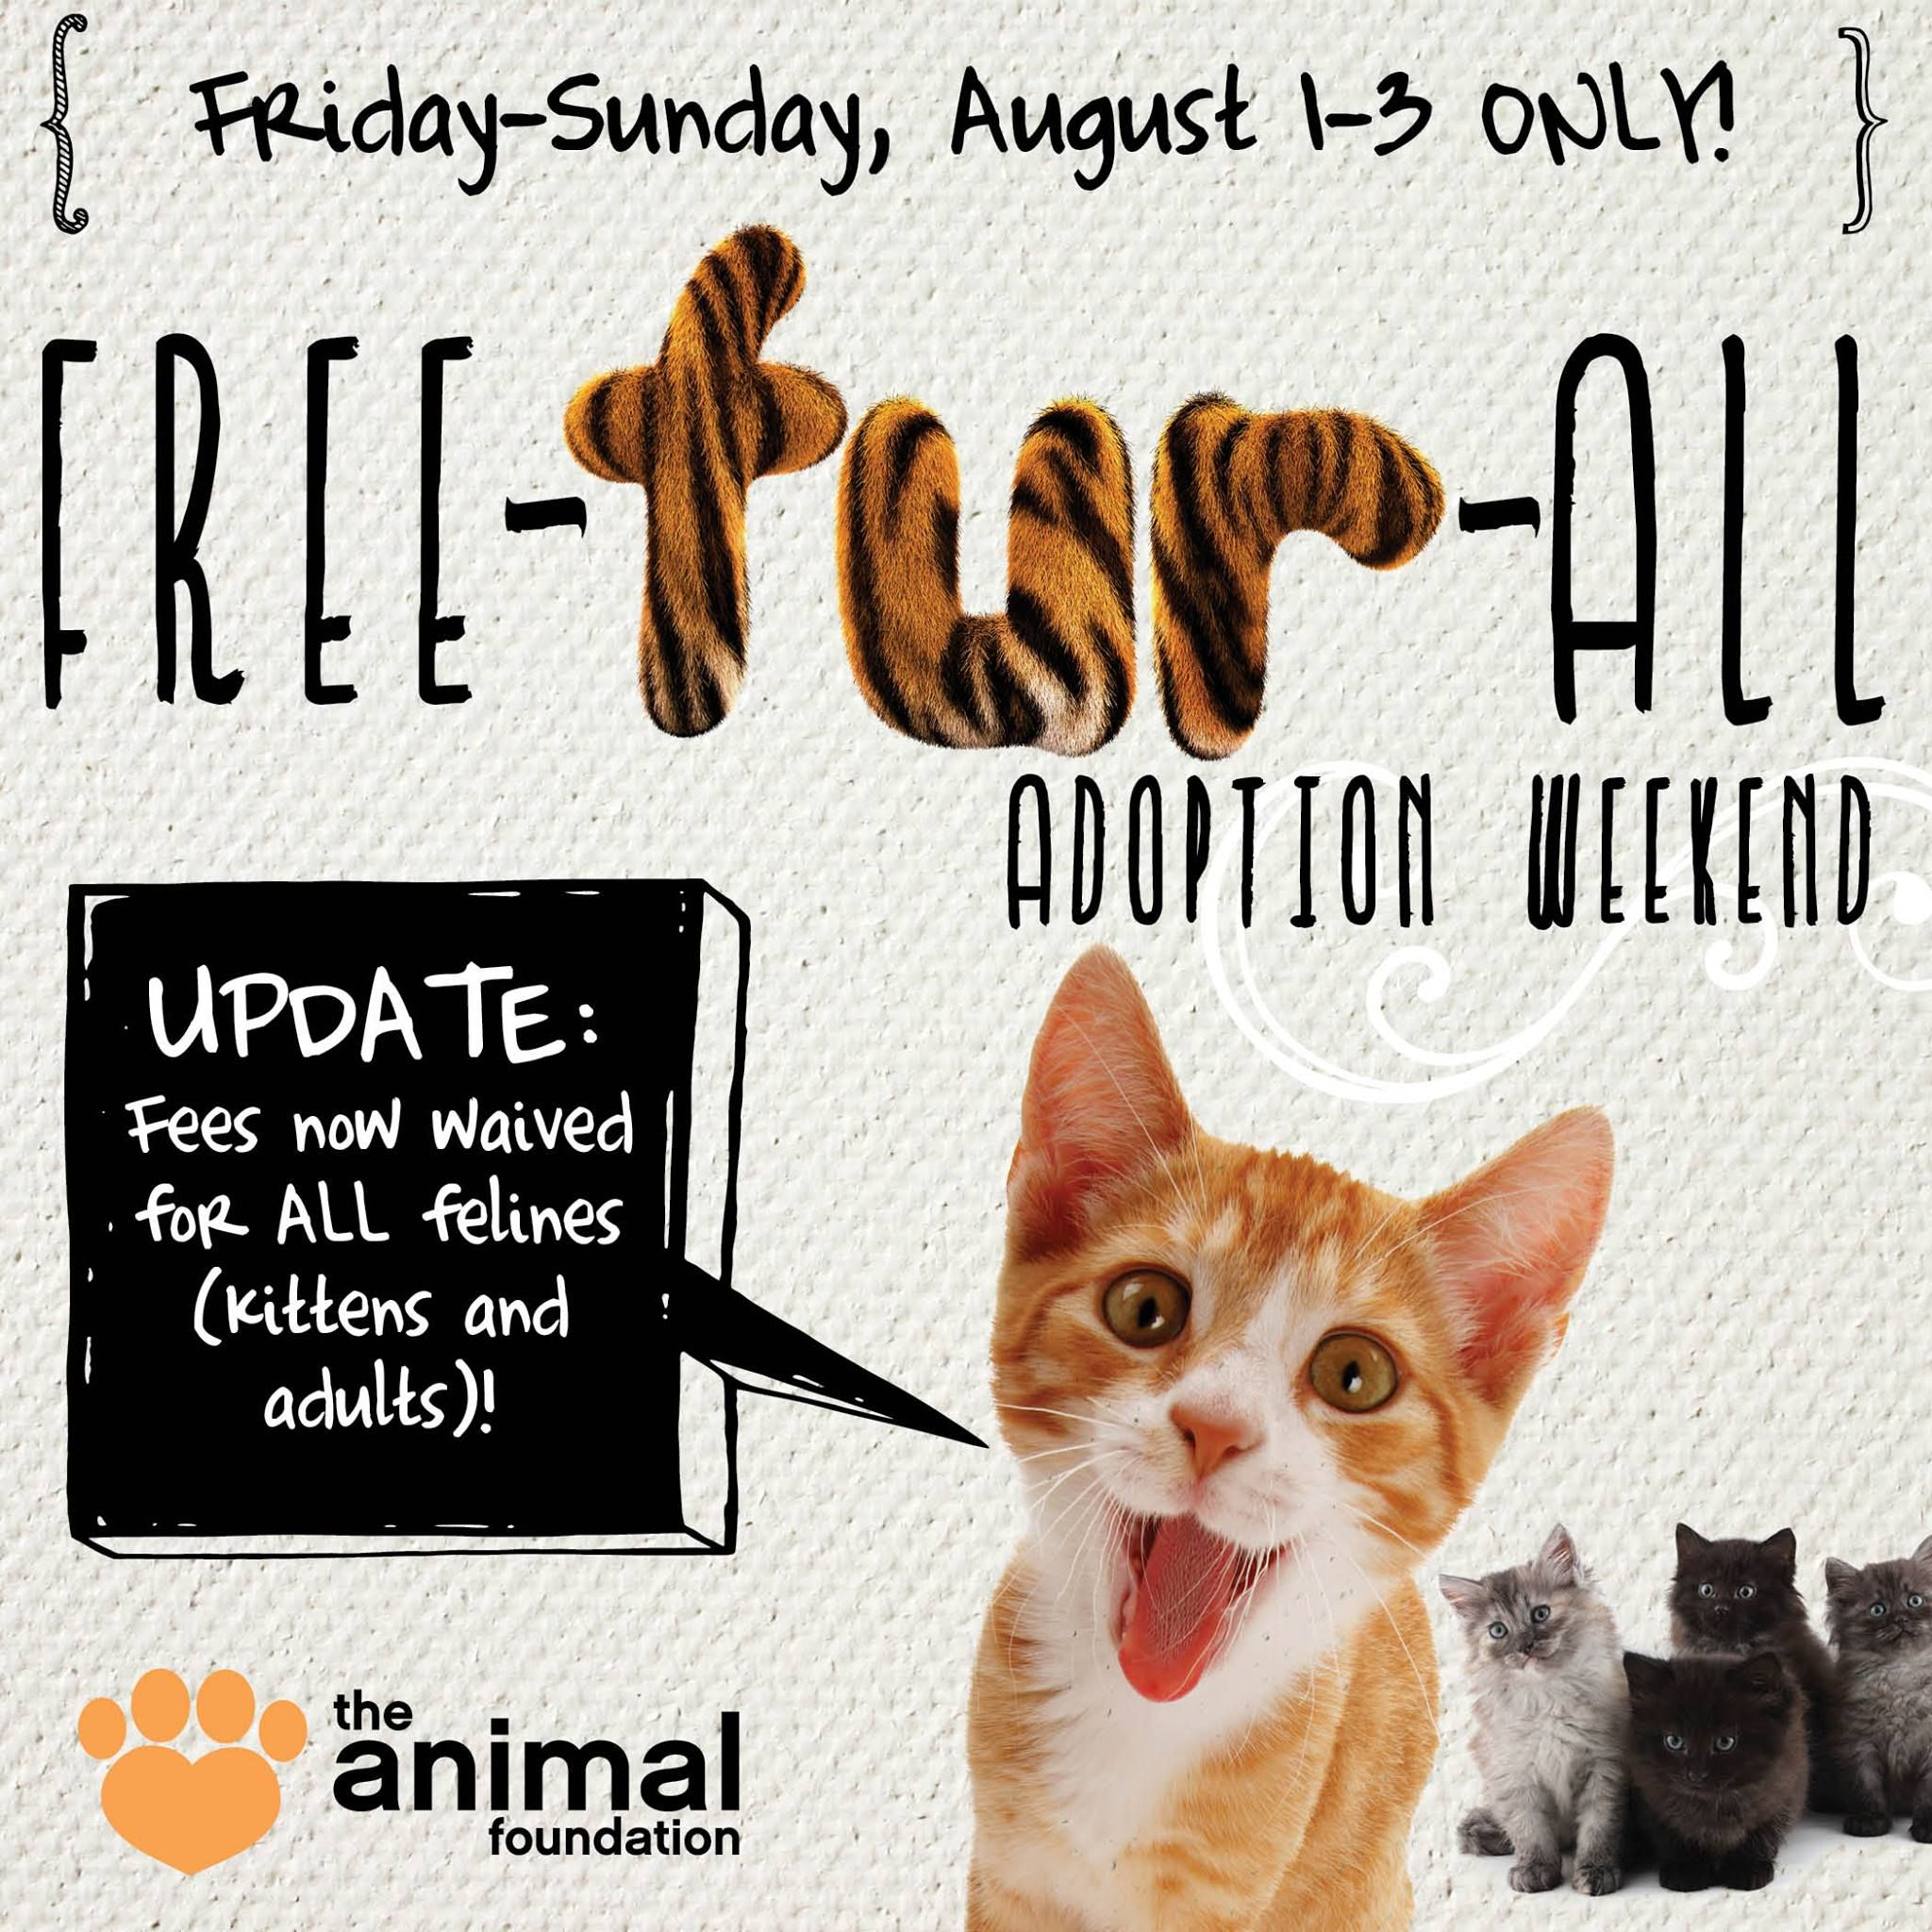 8/1/14 UPDATE — Adoption fees now waived for ALL cats